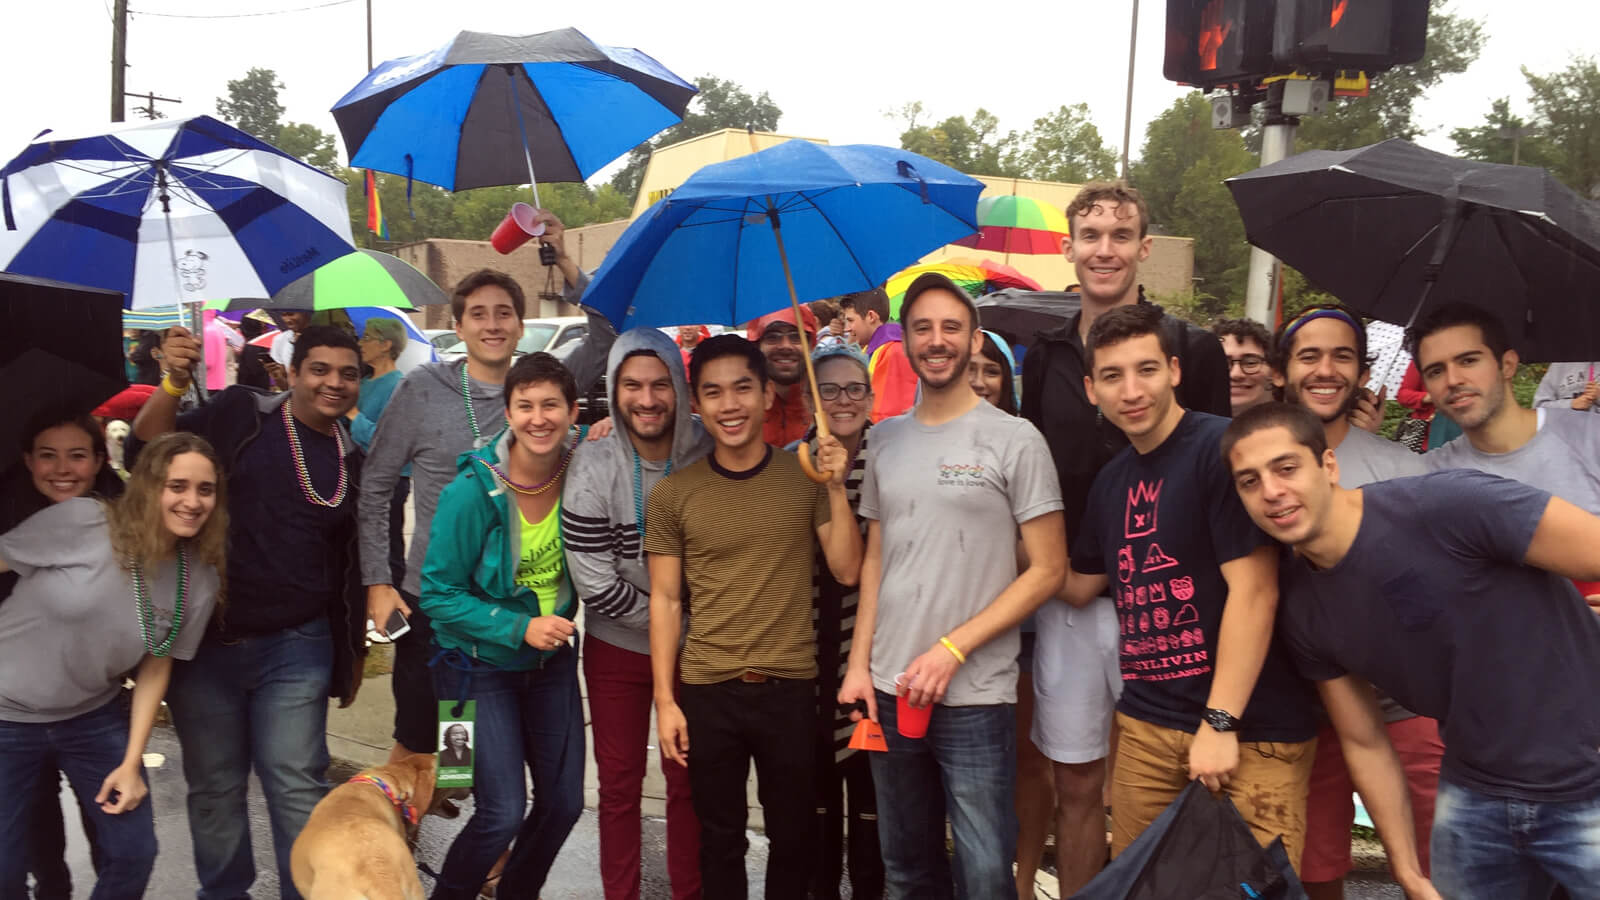 LGBT students from Fuqua's supportive MBA community gathered to watch the North Carolina Pride Parade